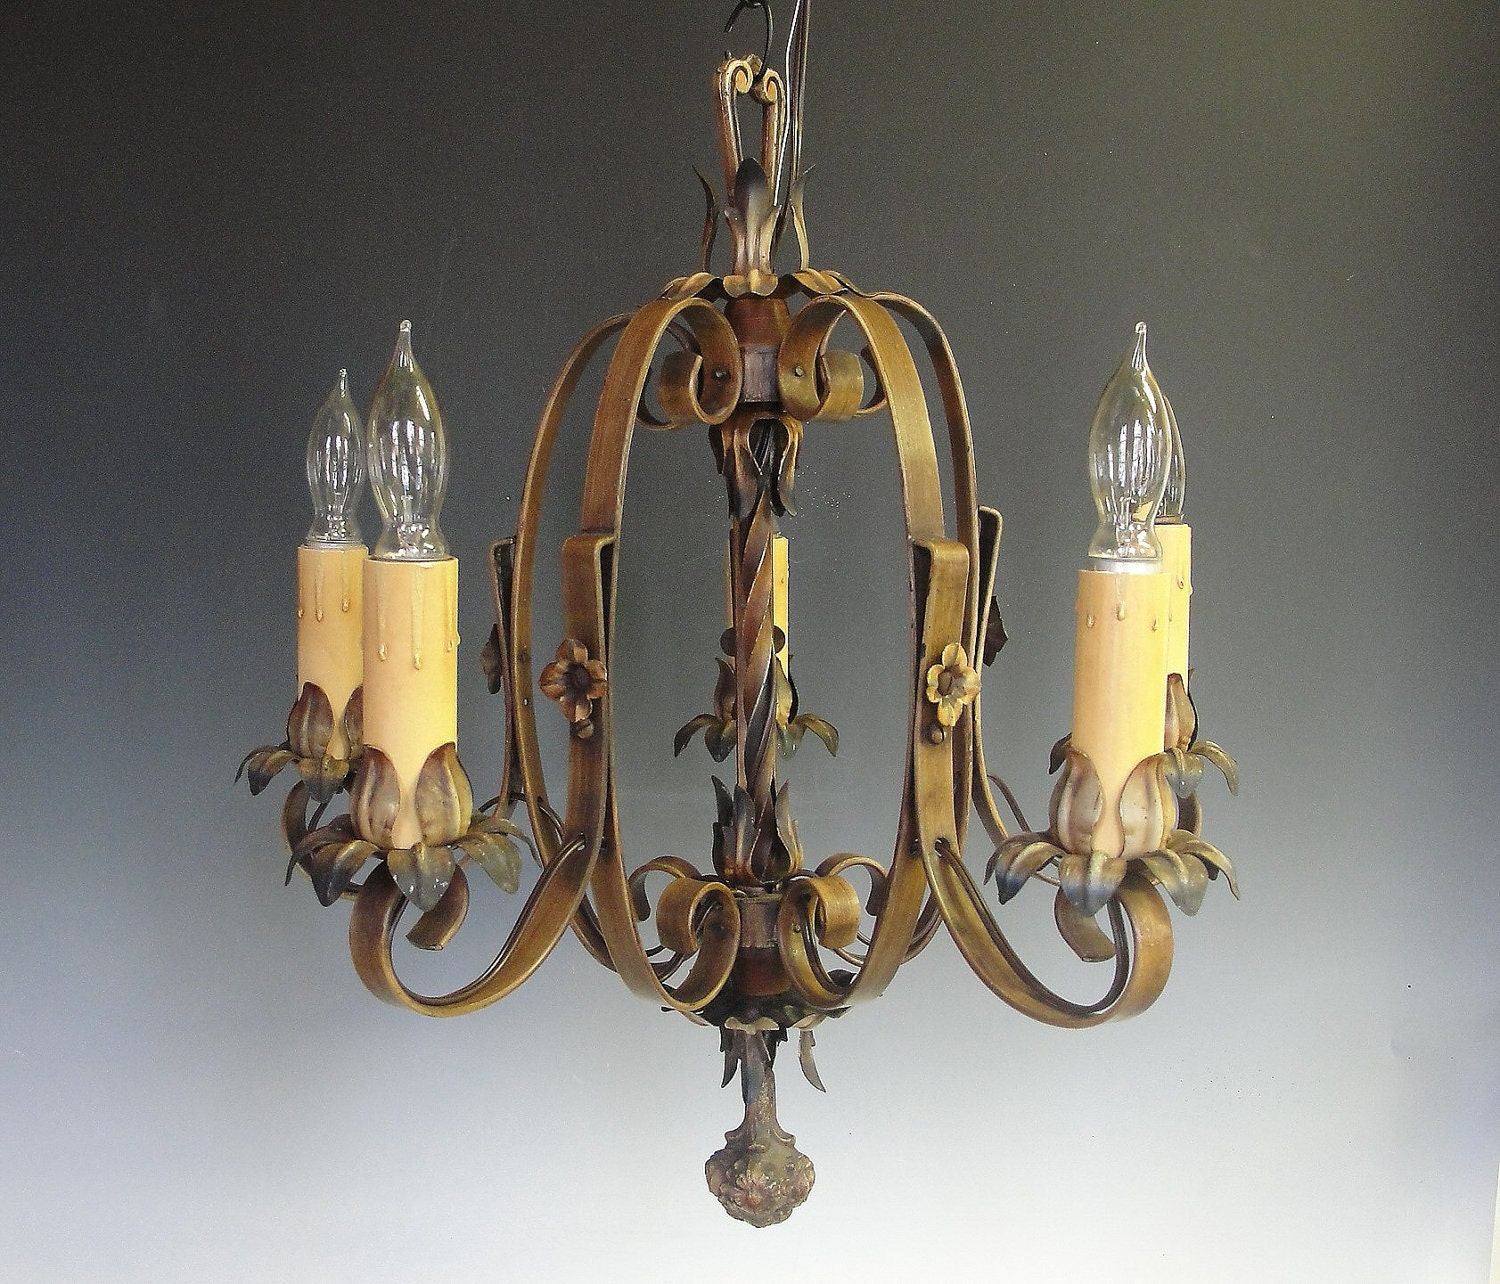 Antique Lighting Free Shipping In Us Vintage Lighting